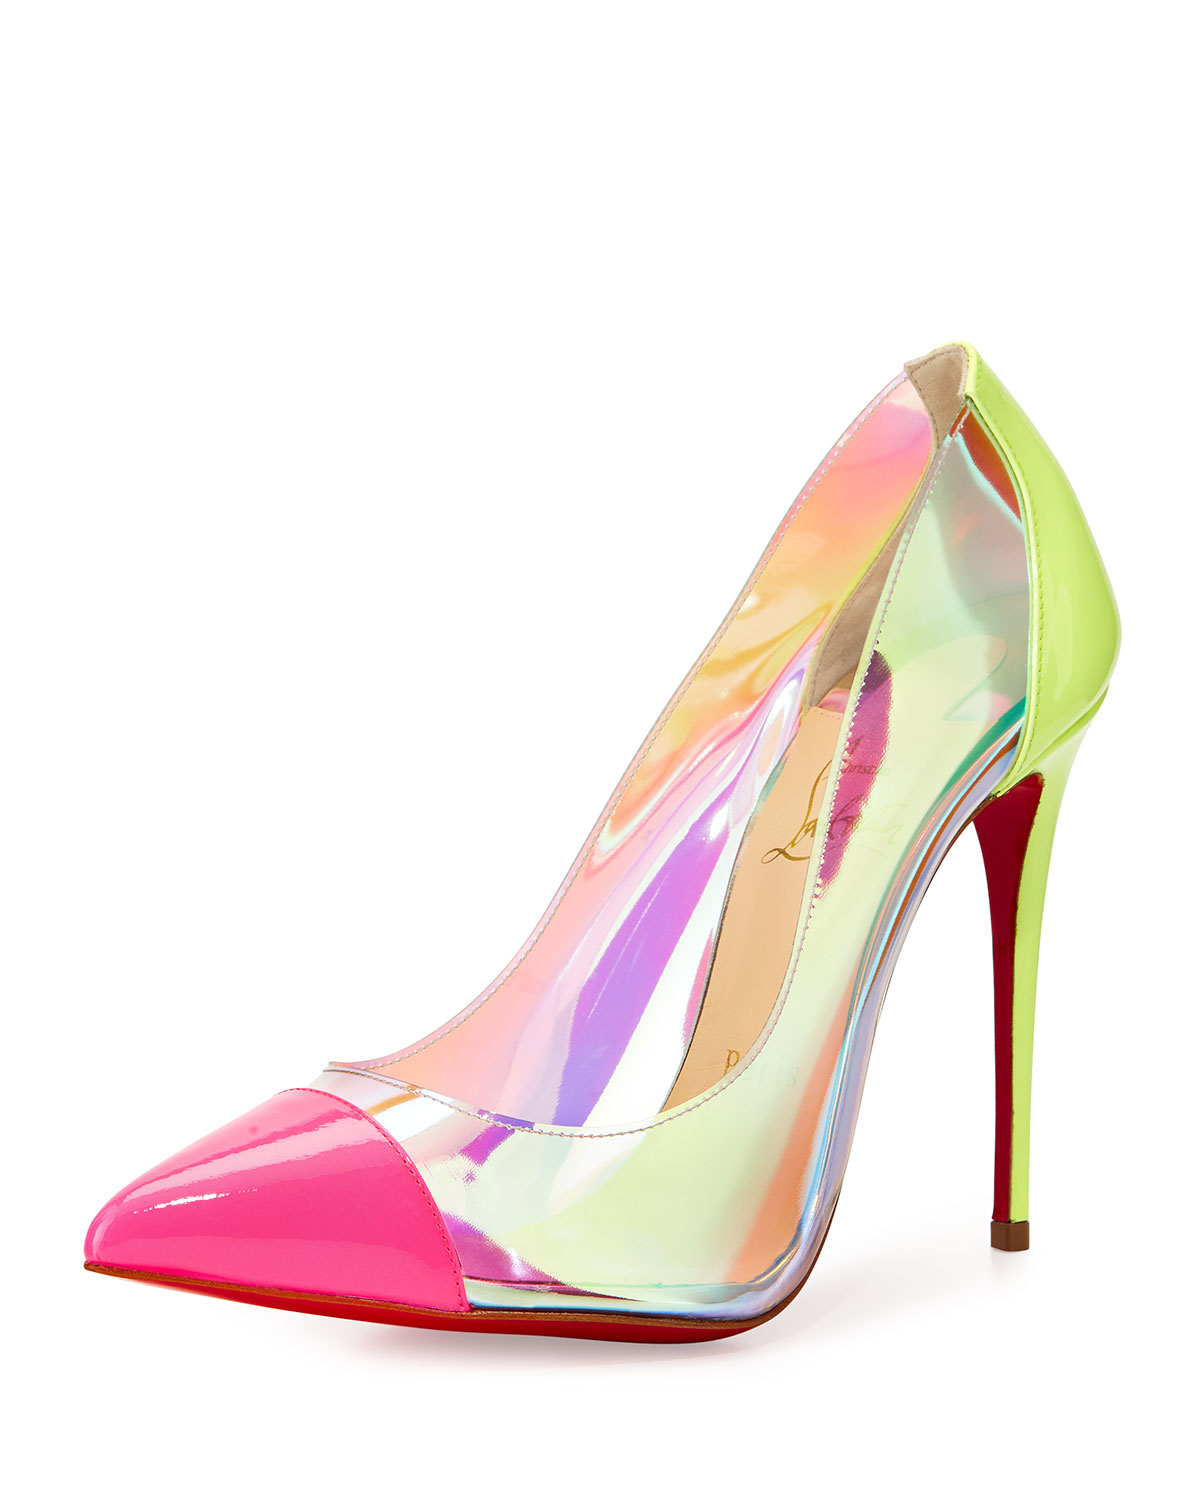 Lyst - Christian Louboutin Debout Patent/pvc Red Sole Pump Christian Louboutin